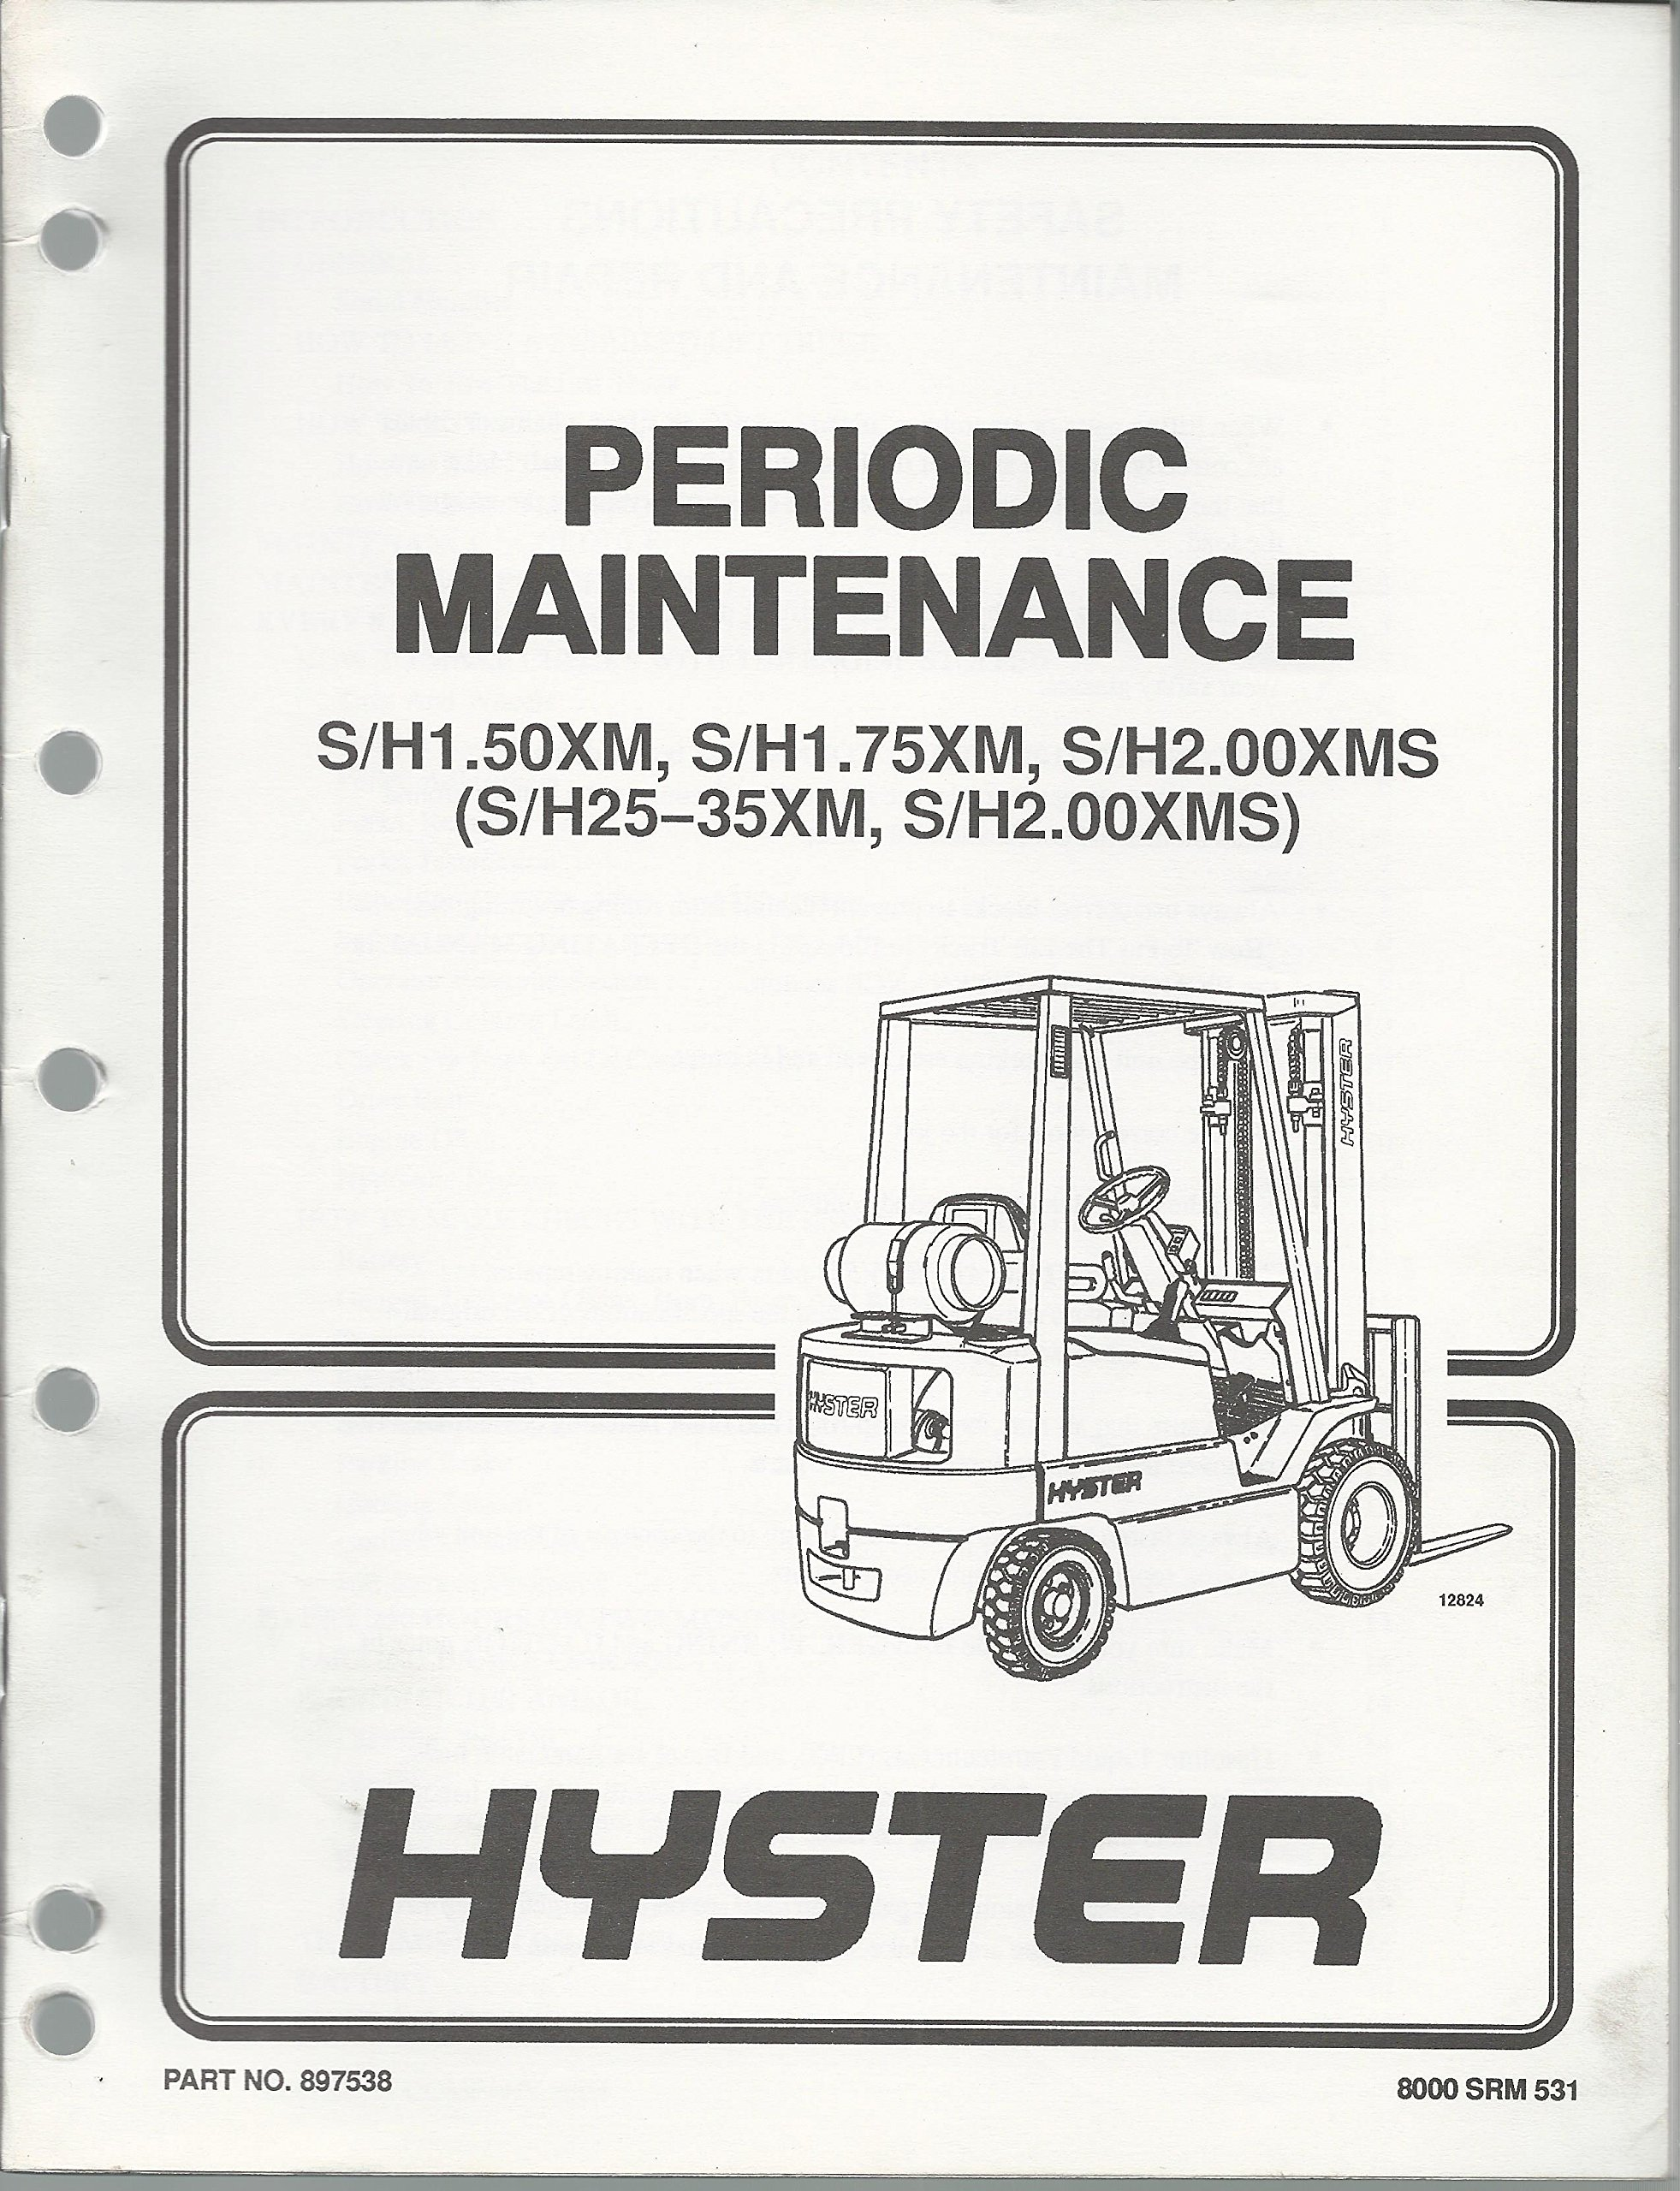 Hyster Wiring Diagram Review Ebooks Diagrams For 50 Forklift S H1 50xm 75xm H2 00xms Periodic Maintenance Manual Rh Amazon Com Old